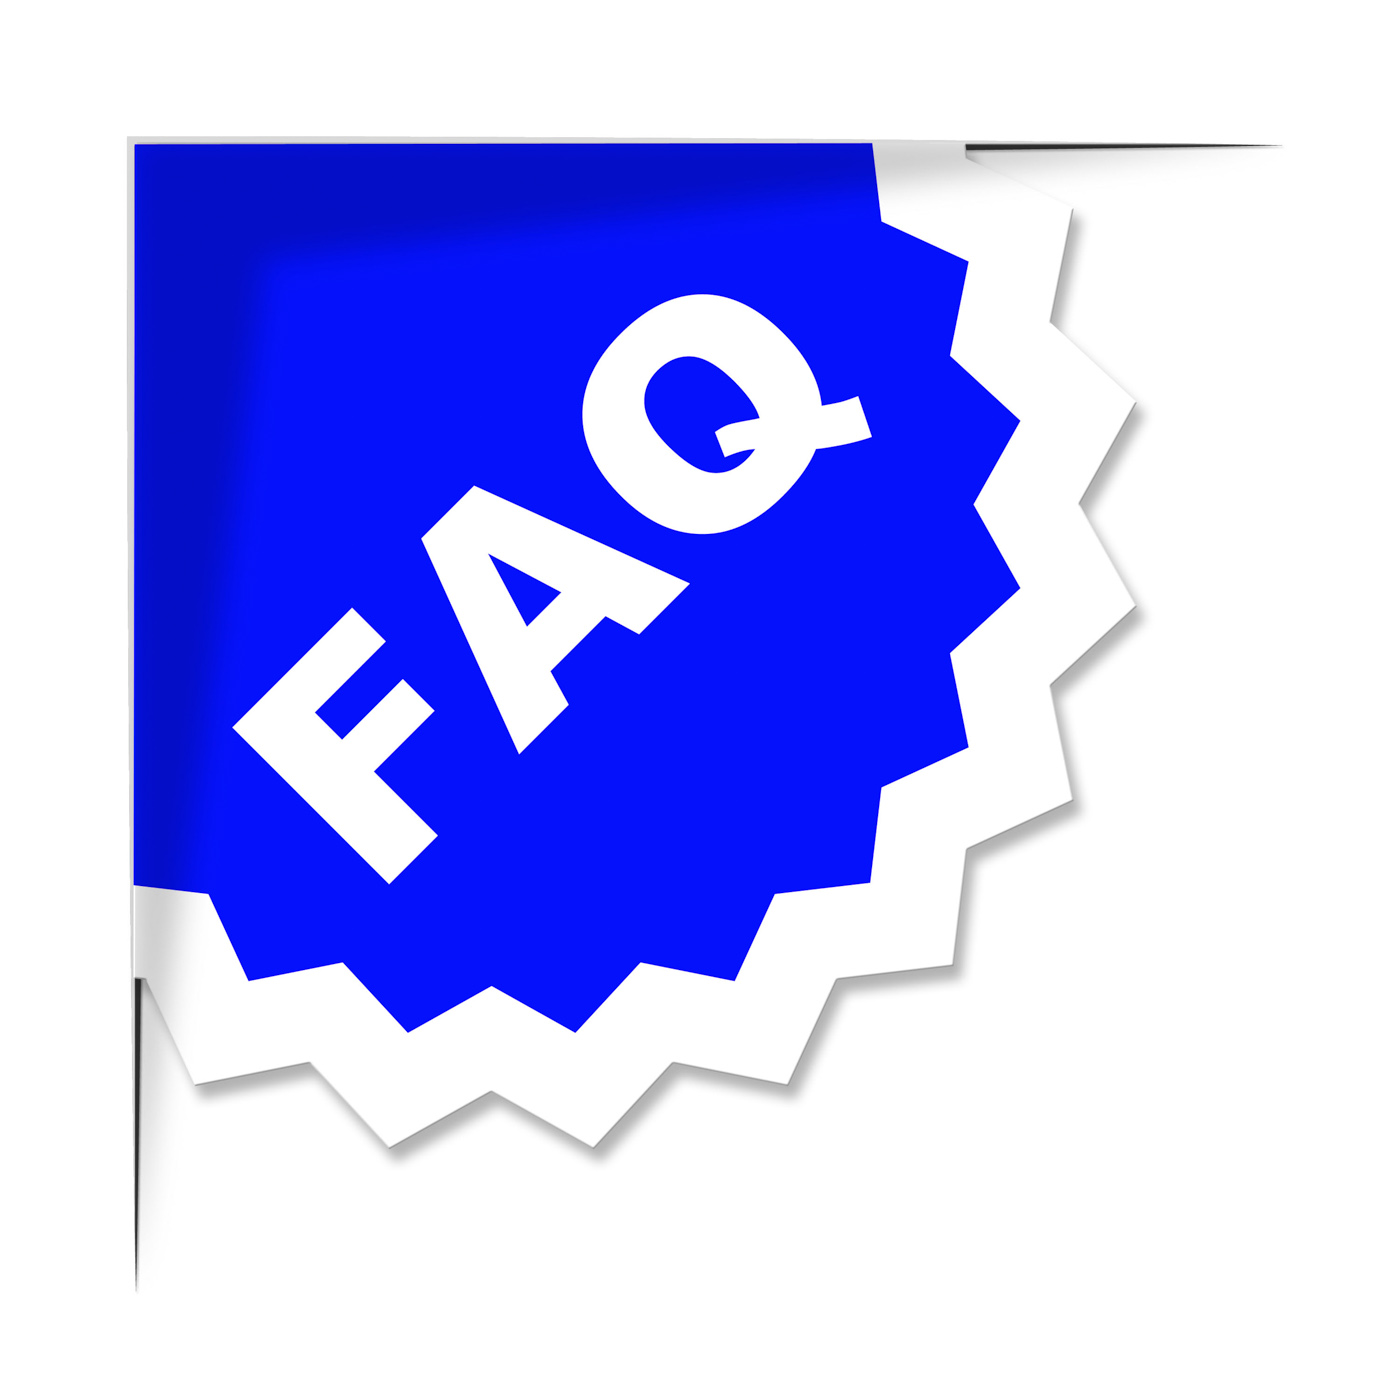 Faq label represents frequently asked questions and advice photo